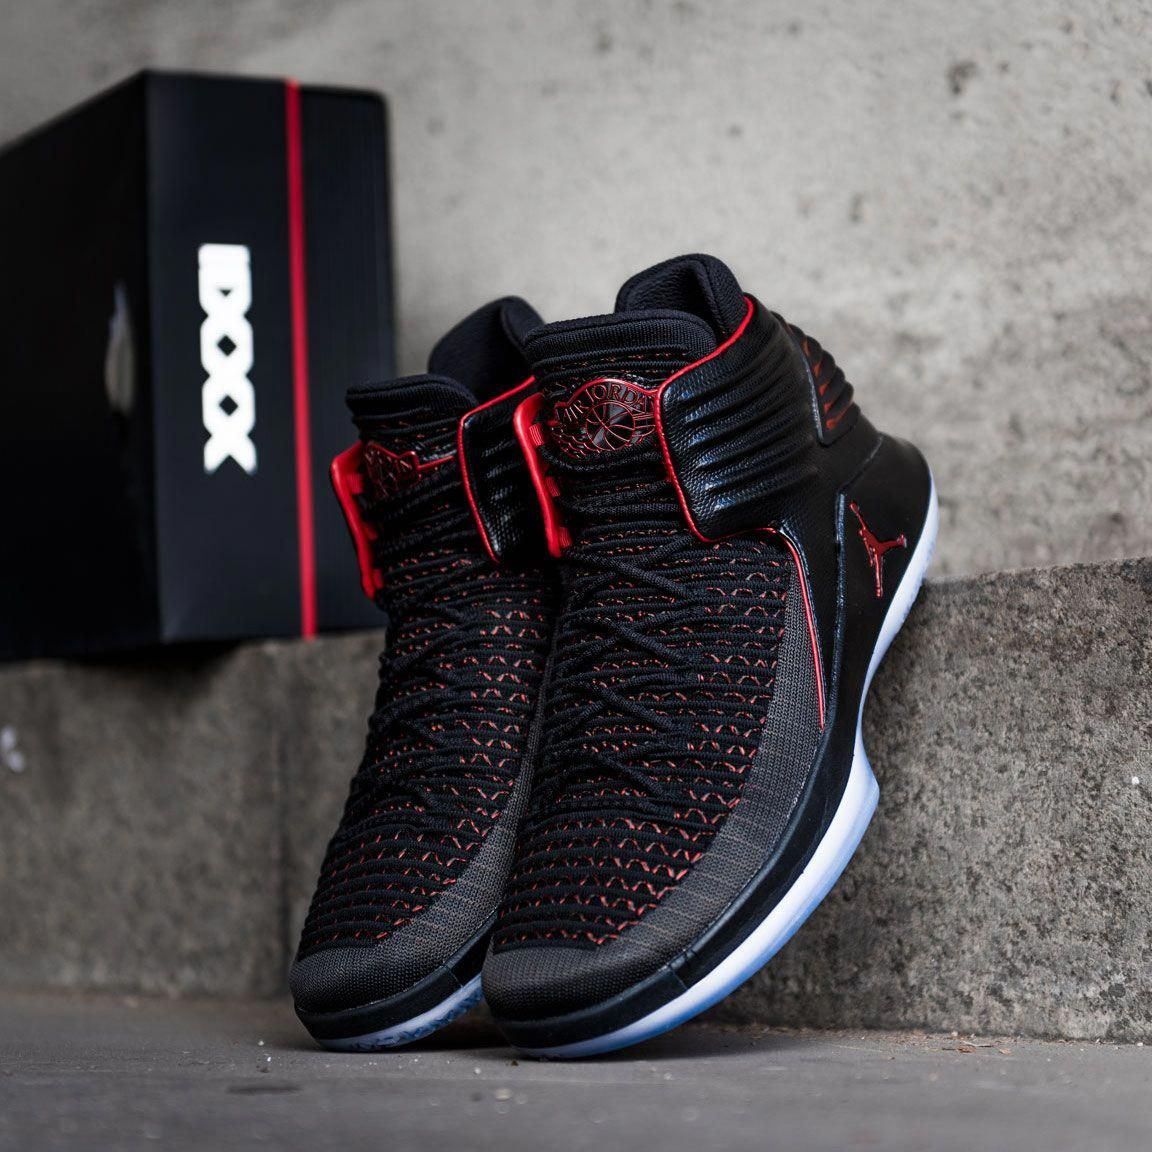 online store d242a eb086 The best basketball shoe right now  Possibly. The Air Jordan XXXII in  black university red colorway. Now available at KICKZ.com   adidasbasketballshoes